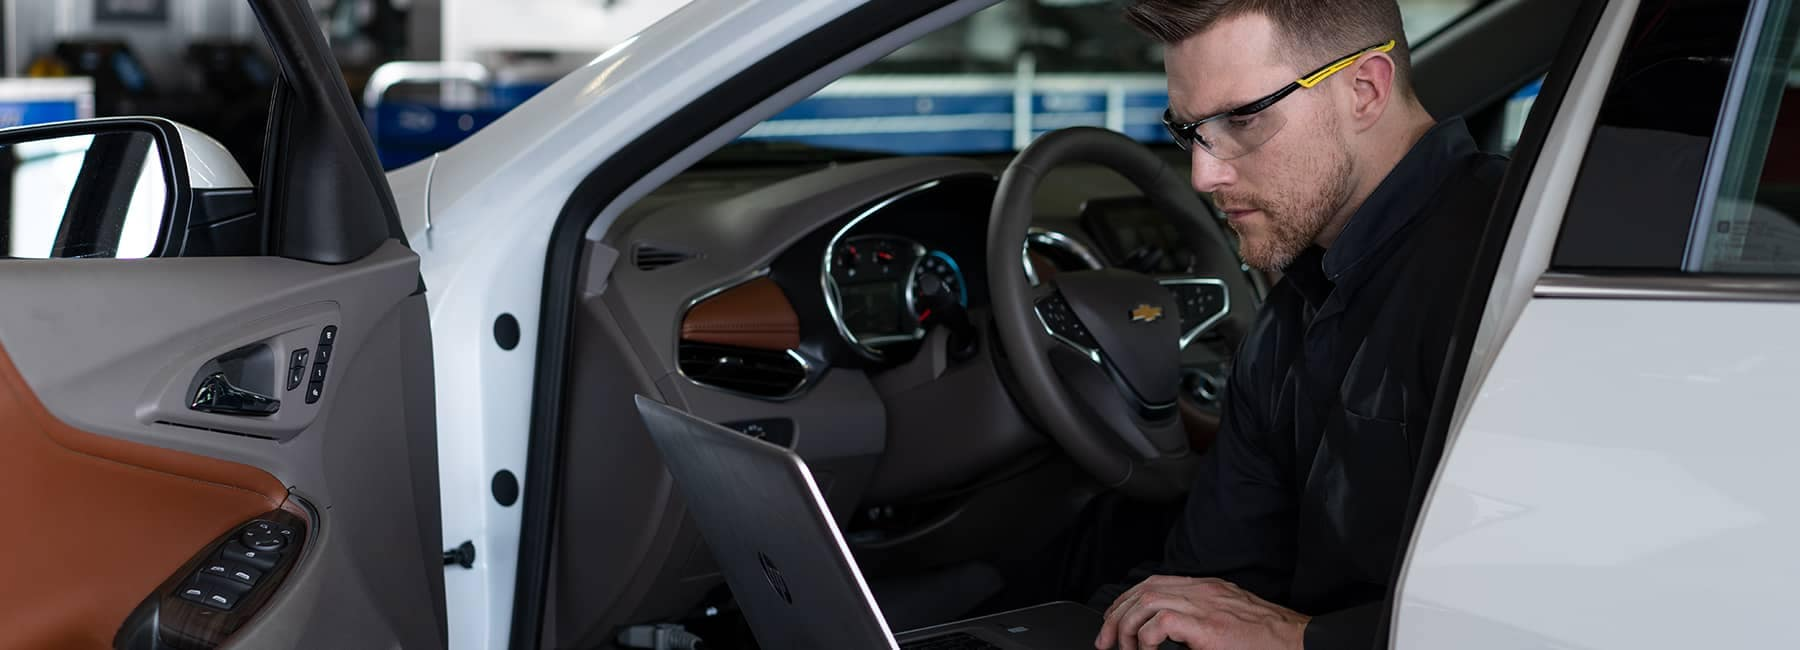 Service technician inside a car looking at his laptop.